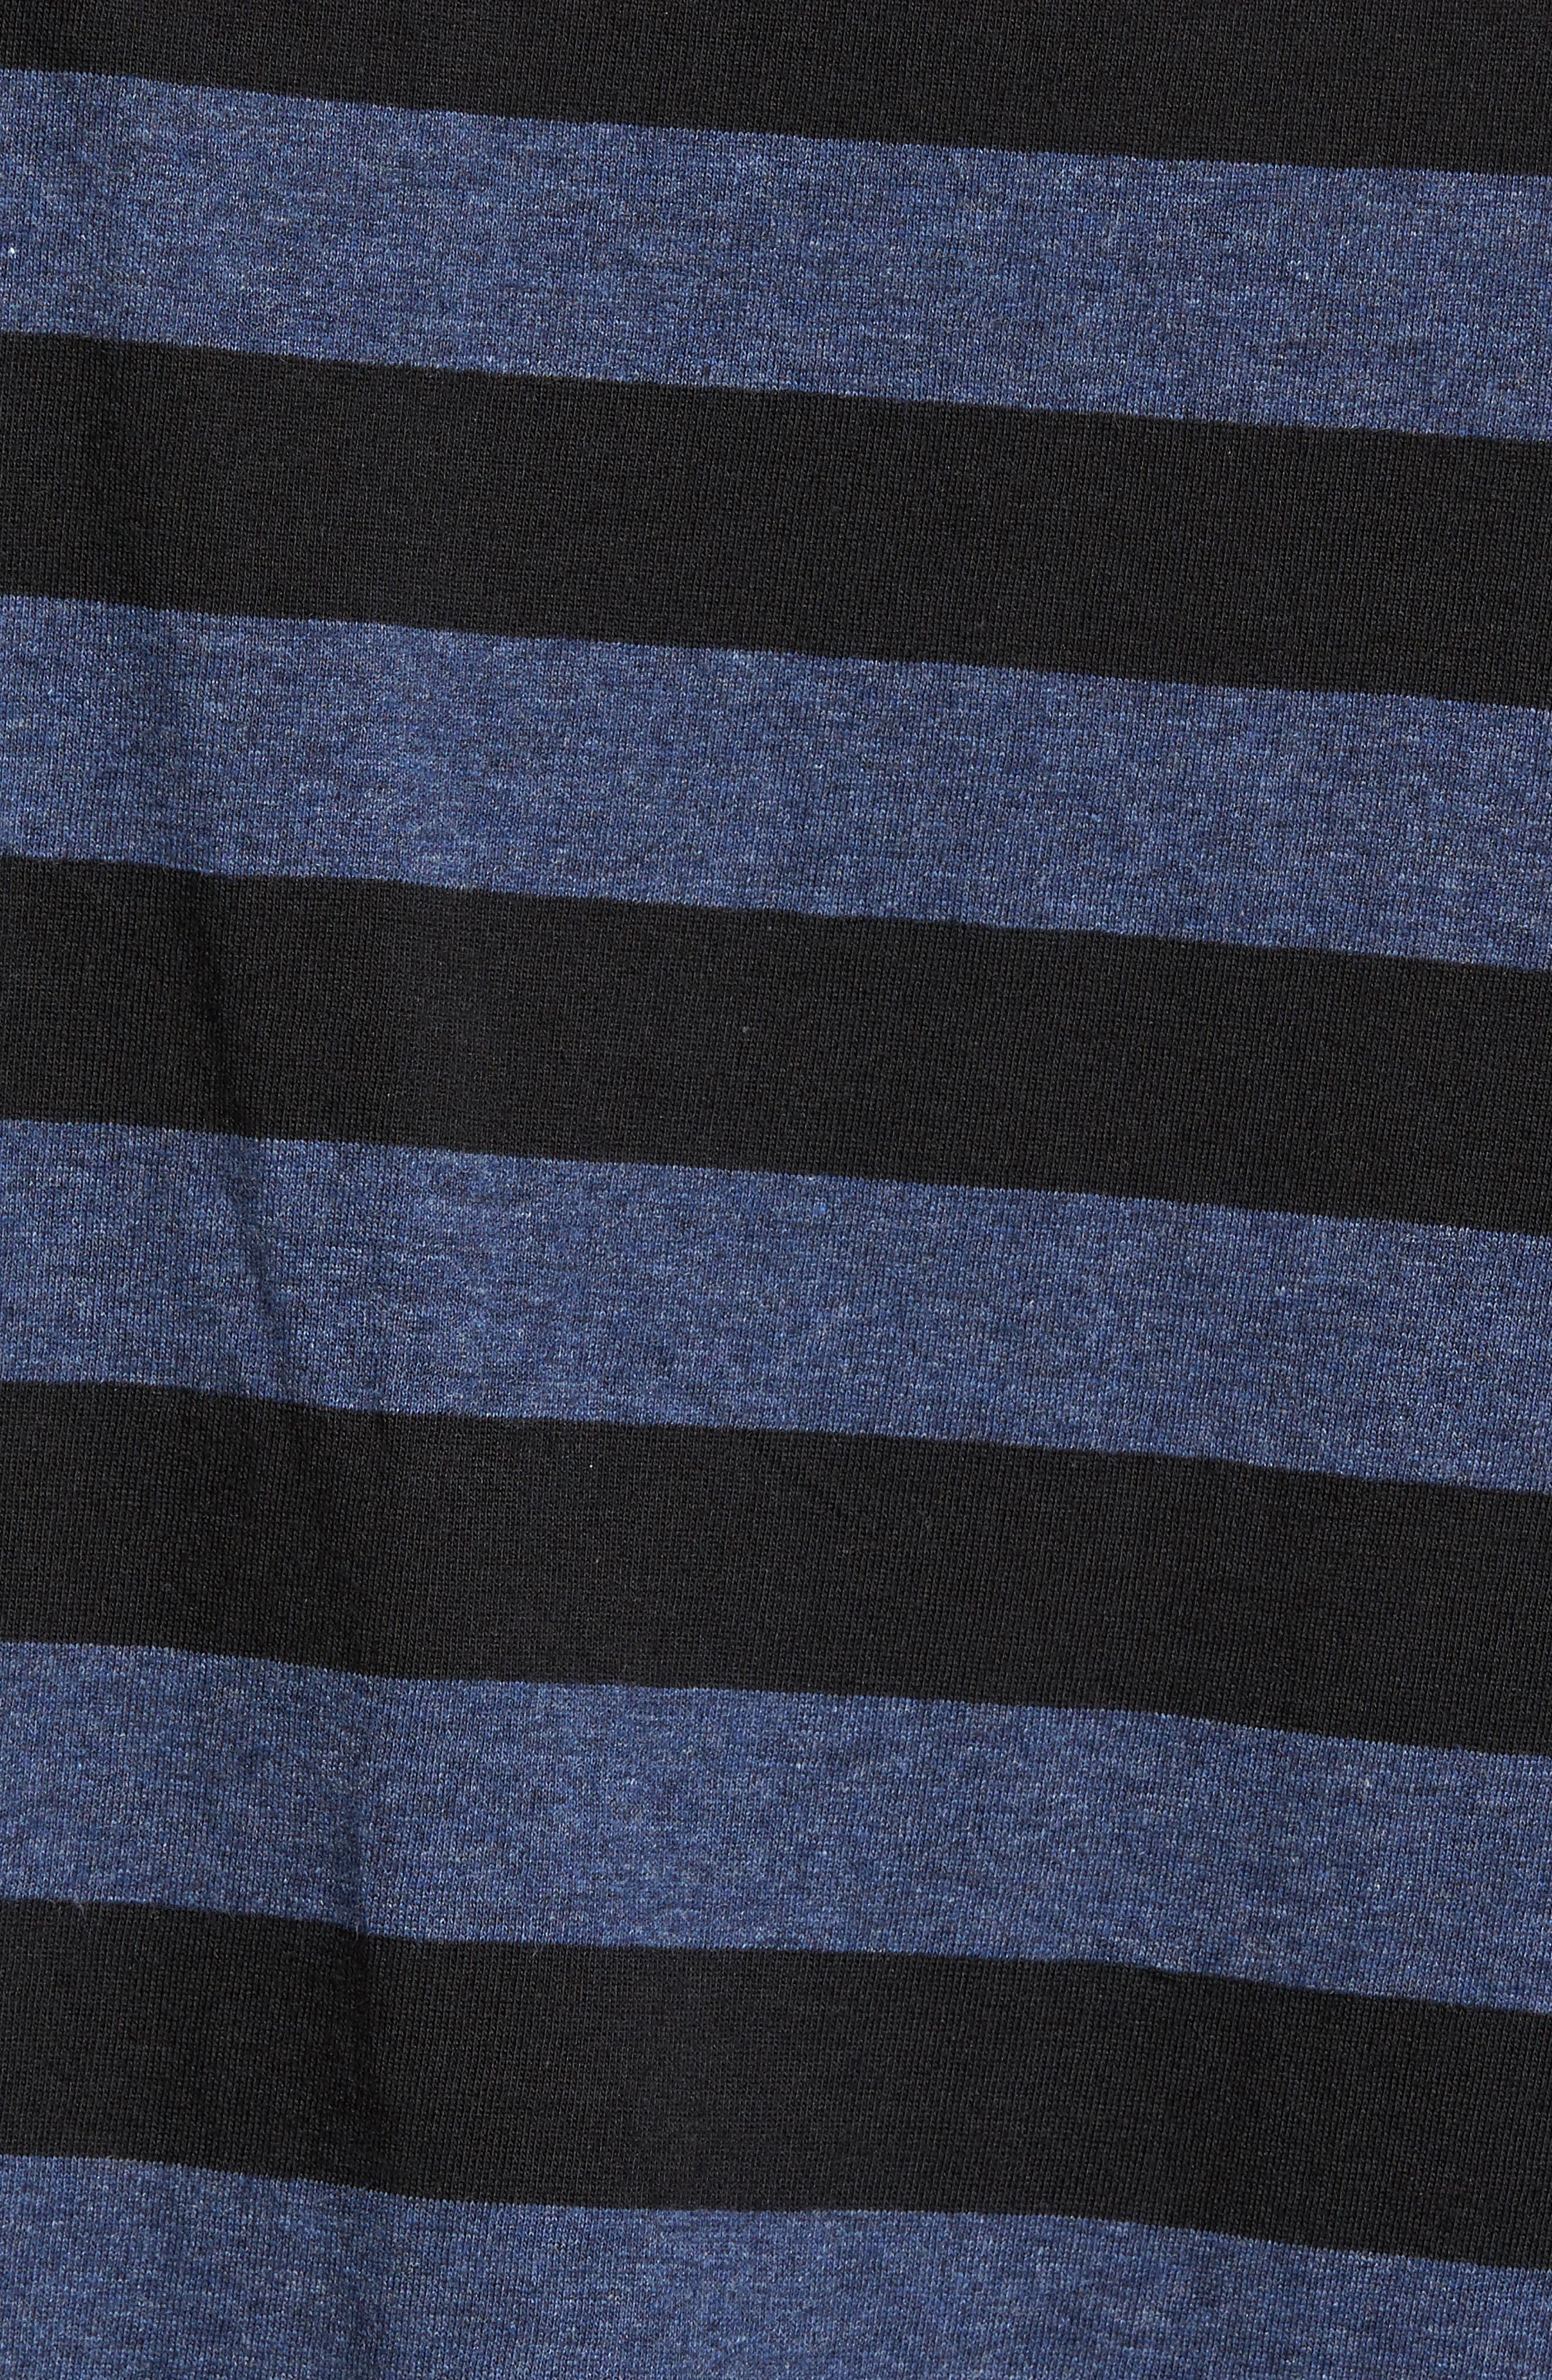 Striped Long Sleeve Henley T-Shirt,                             Alternate thumbnail 5, color,                             Heather Blue/ Black Stripe